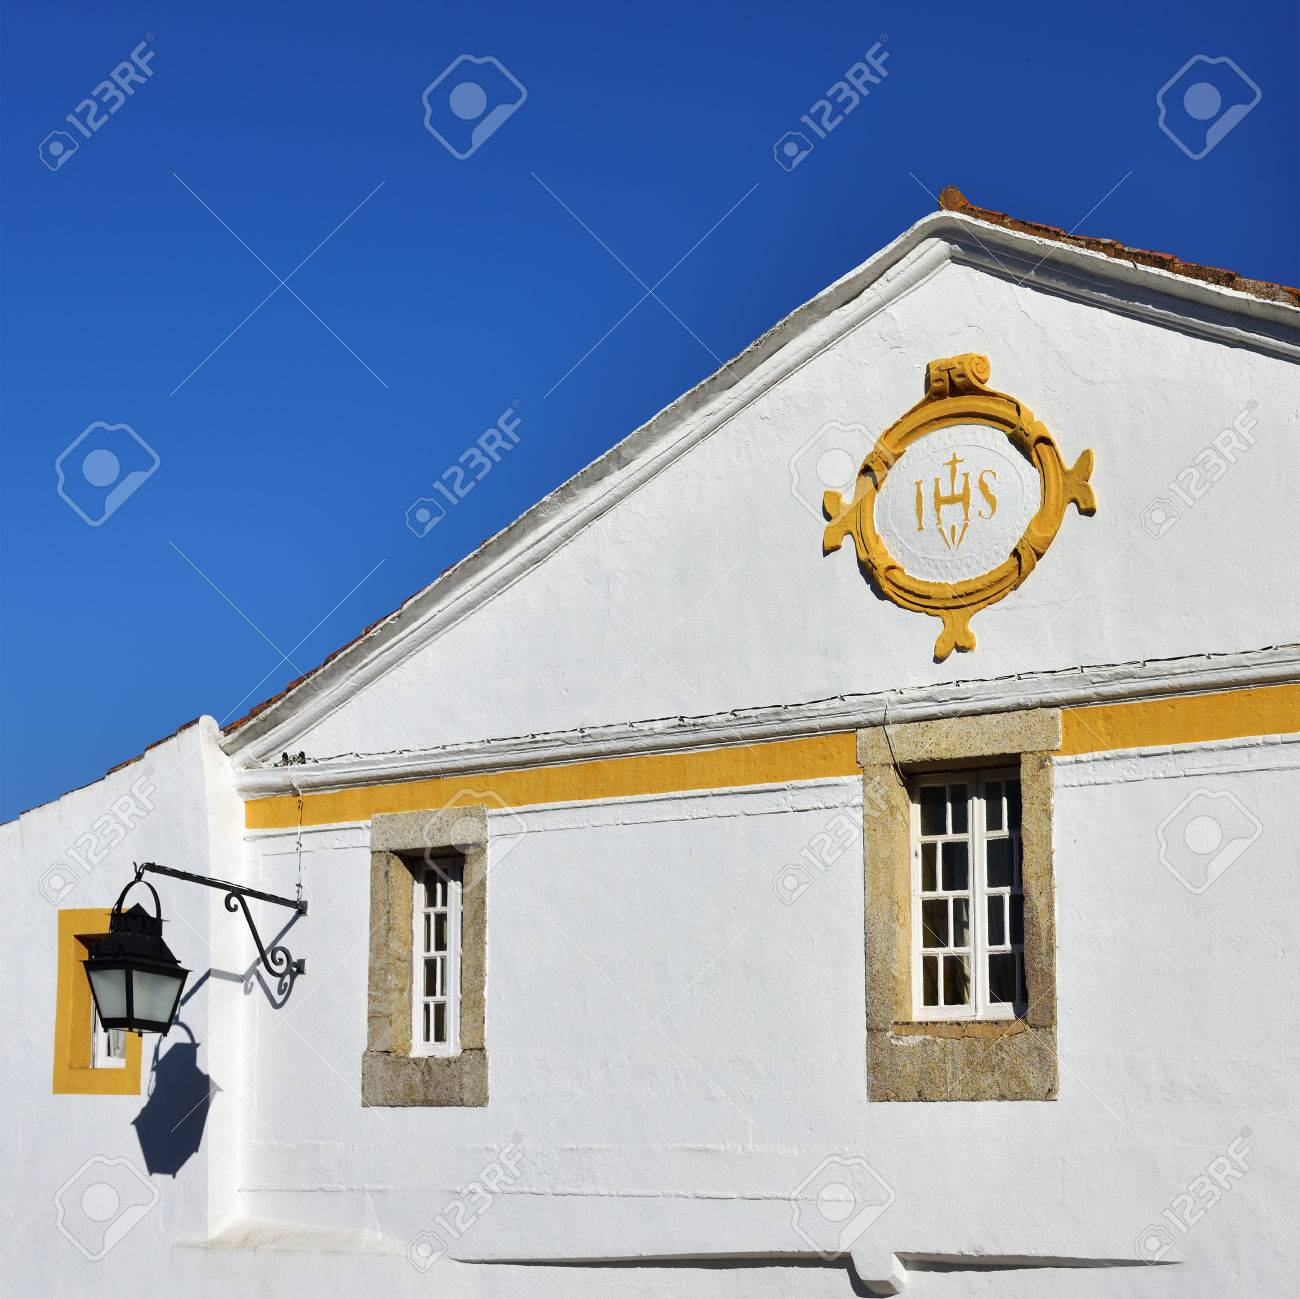 Ihs Sign Symbol Of The Jesuit Order On The White Wall Of The